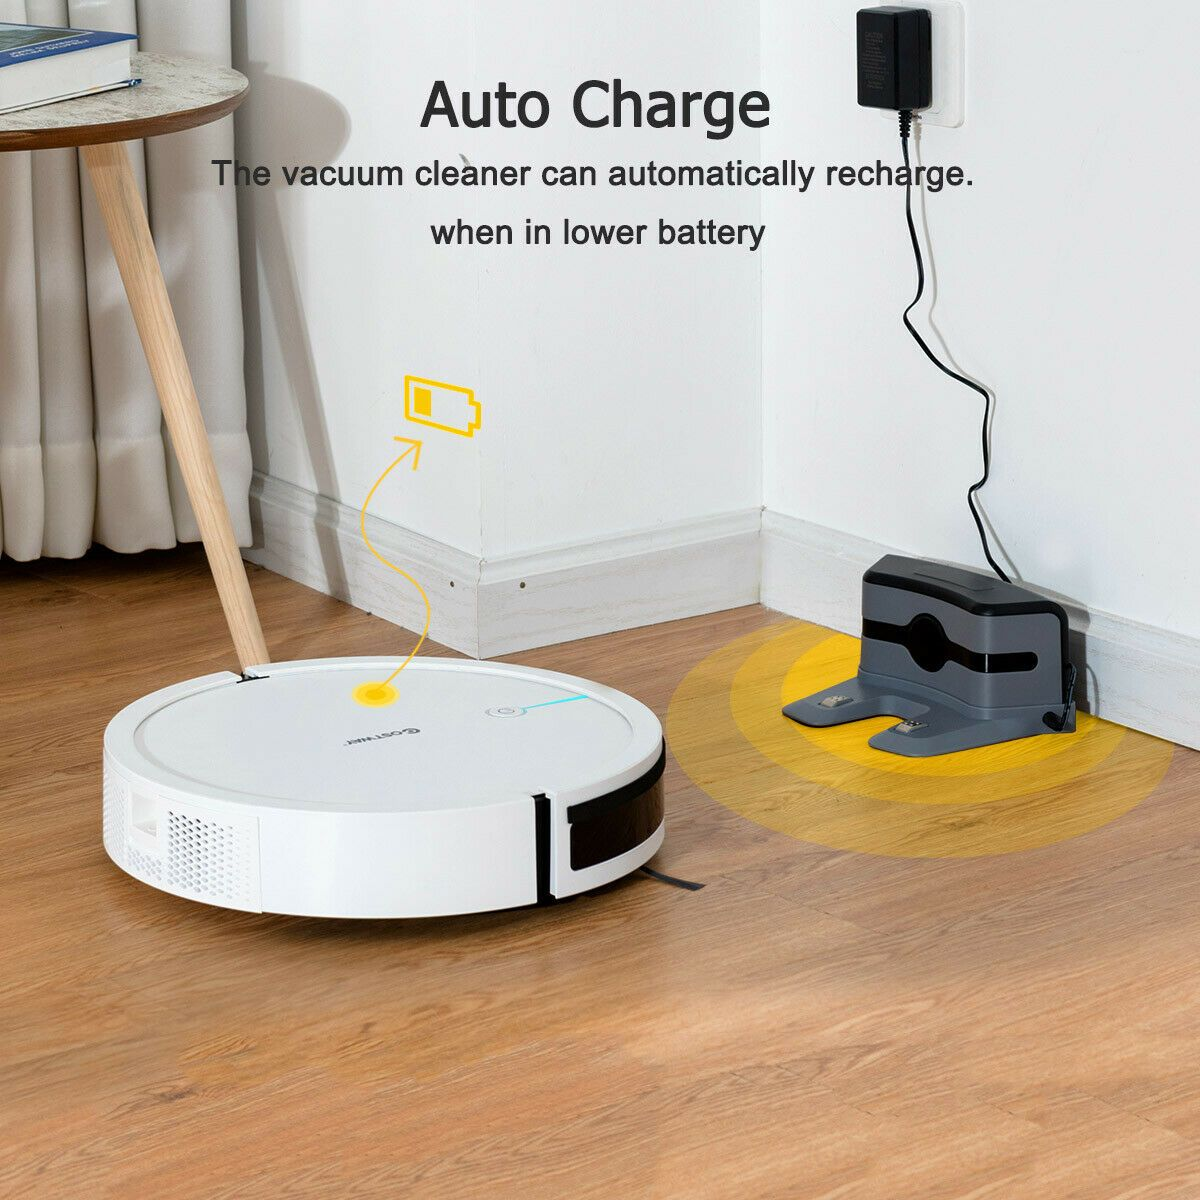 Costway Robot Vacuum Cleaner Self-Charge App Voice Control Filter Water Tank White